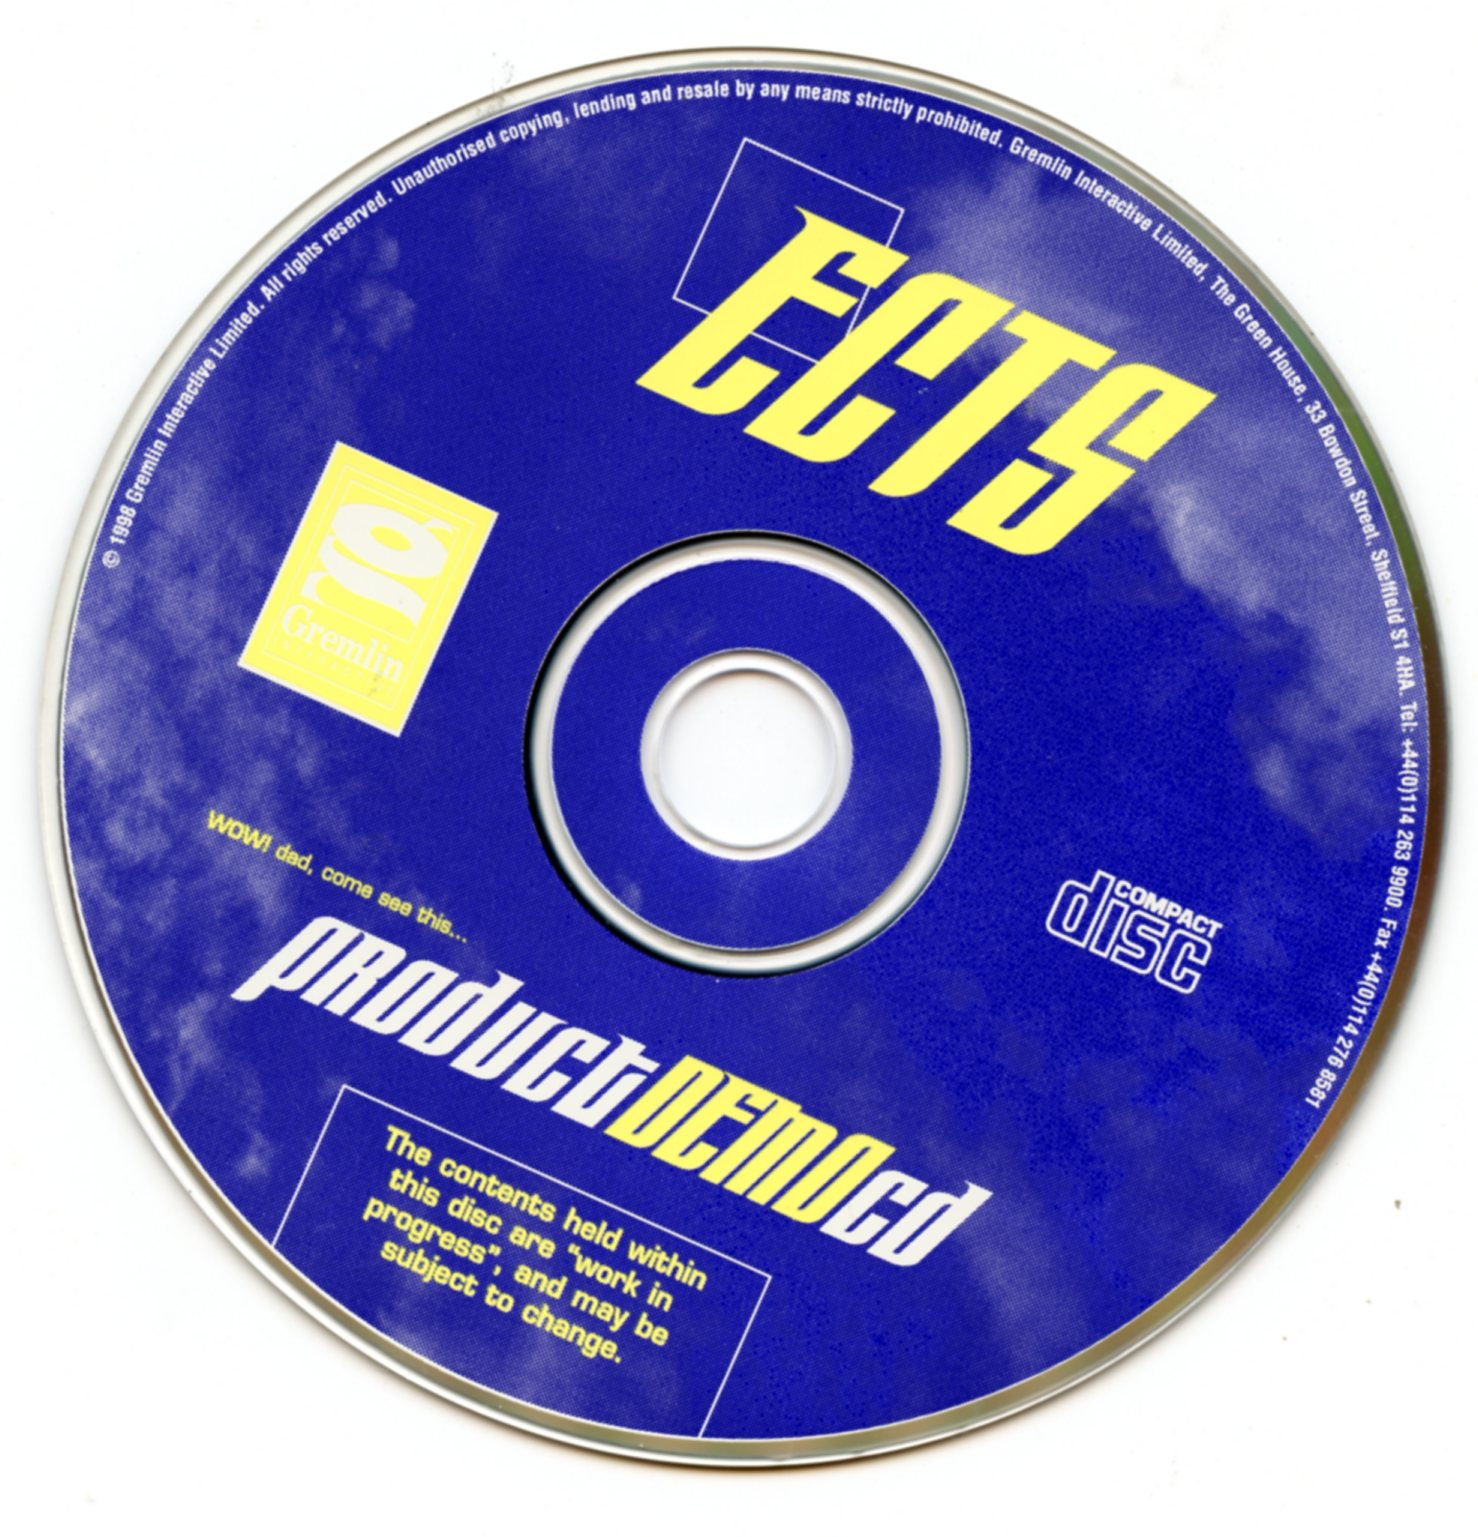 ECTS Product Demo CD and ISO